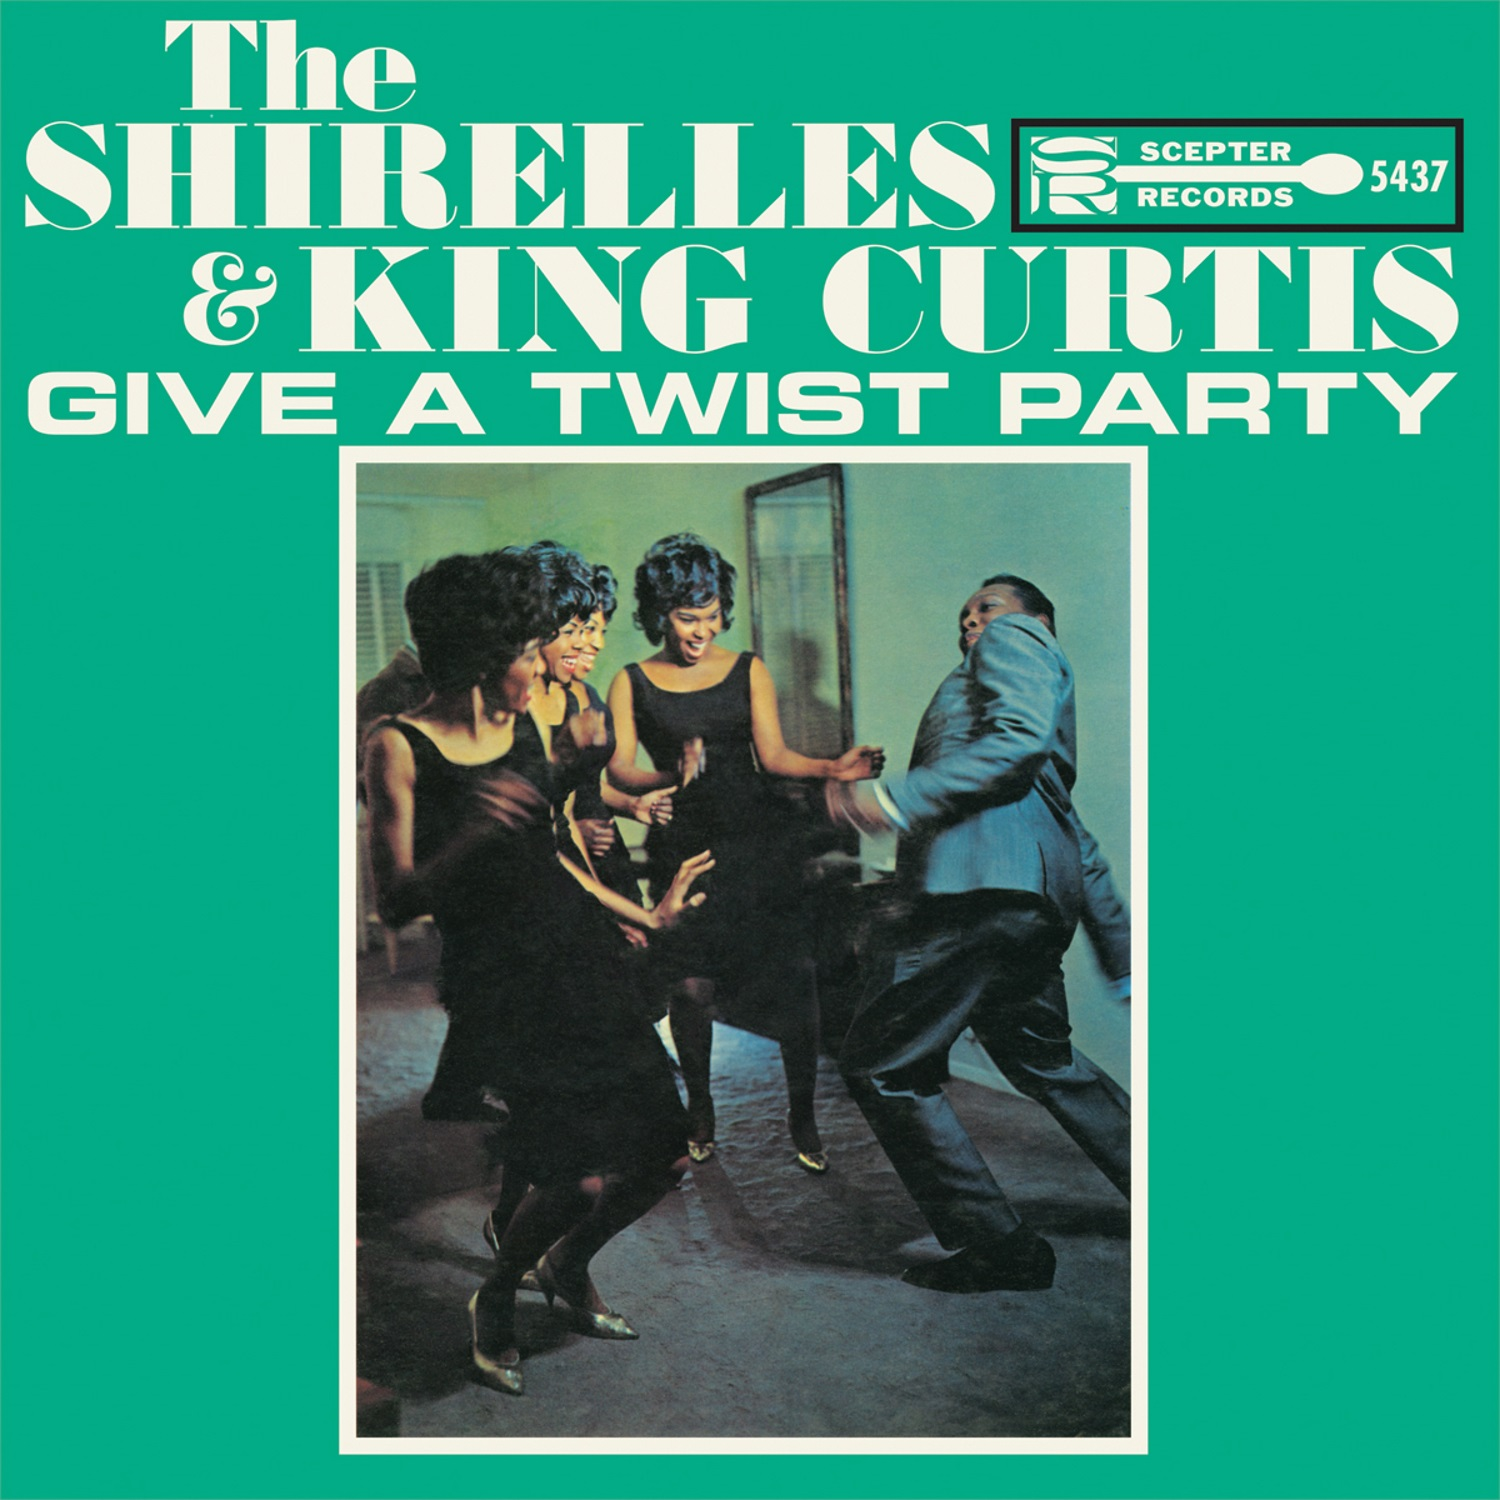 Shirelles, The - The Shirelles and King Curtis Give a Twist Party LP